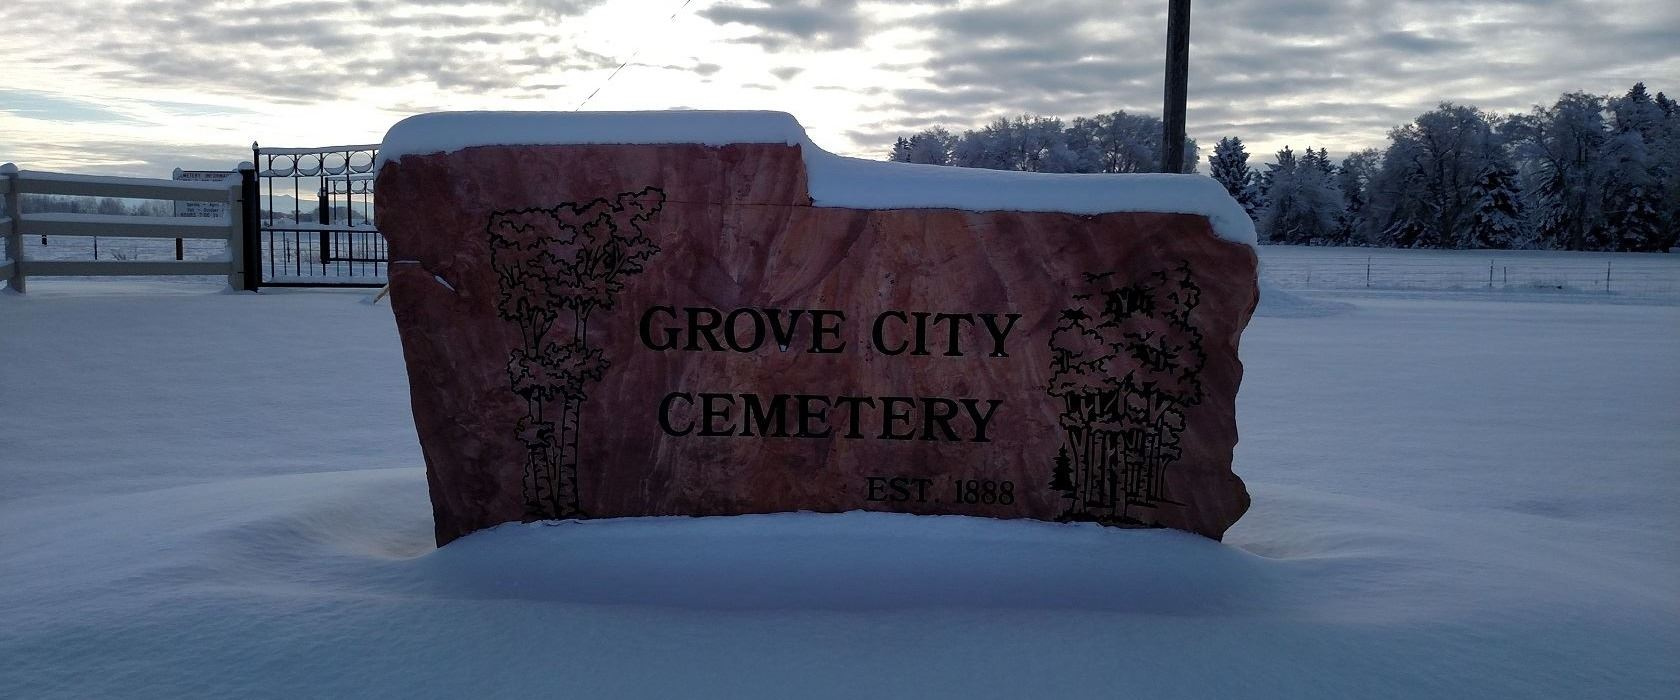 Picture of the new stone cemetery sign.